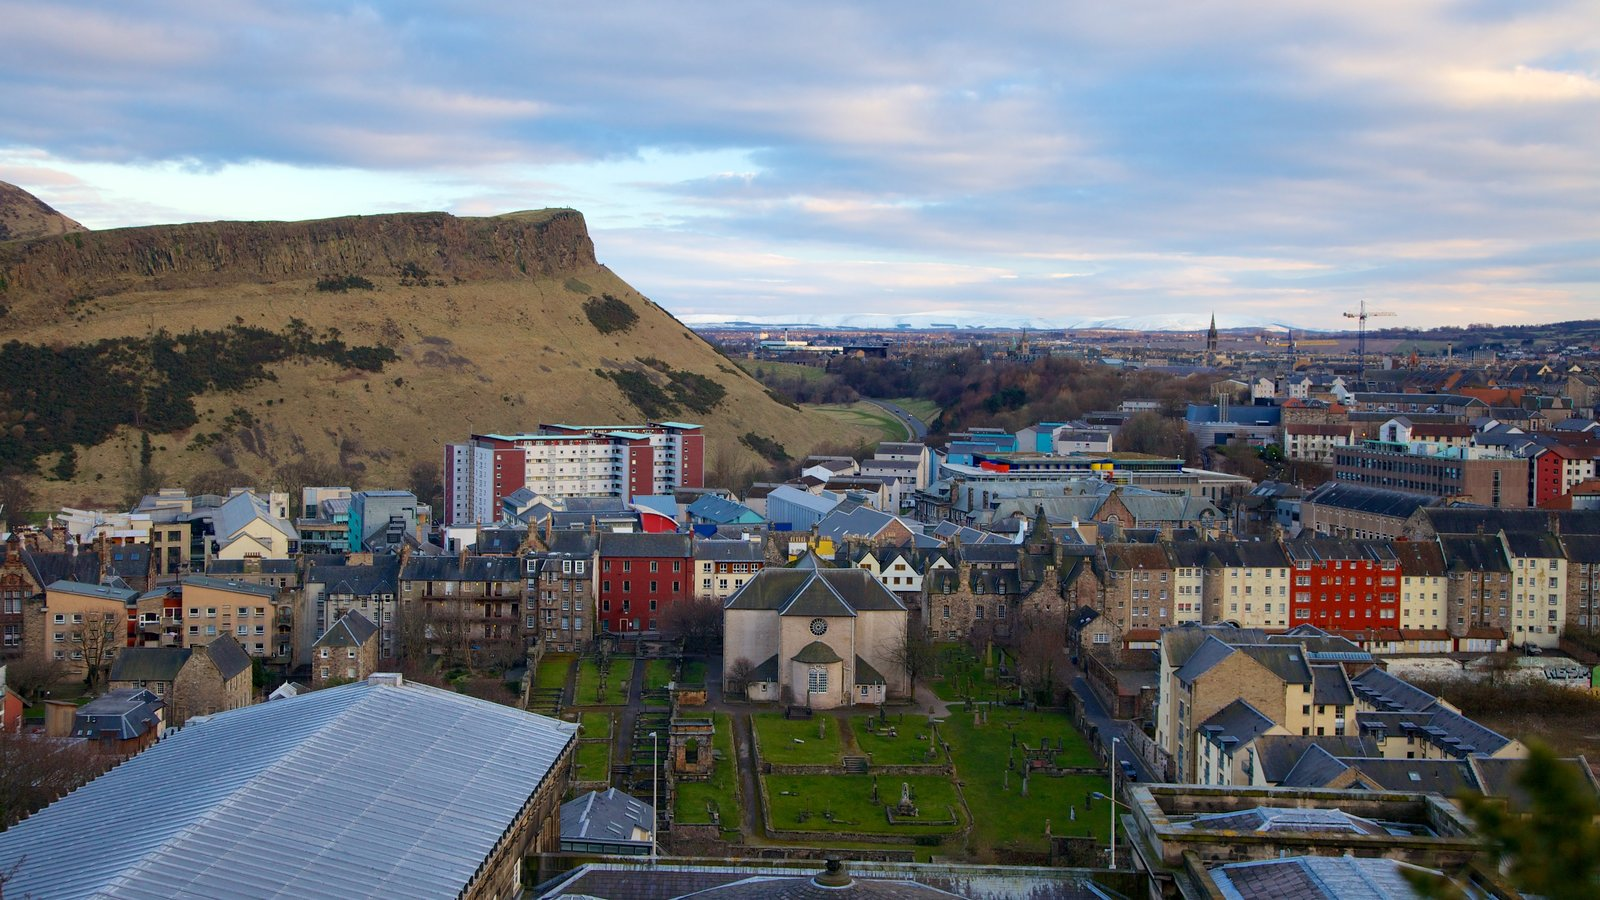 Arthur\\\'s Seat showing a city and mountains